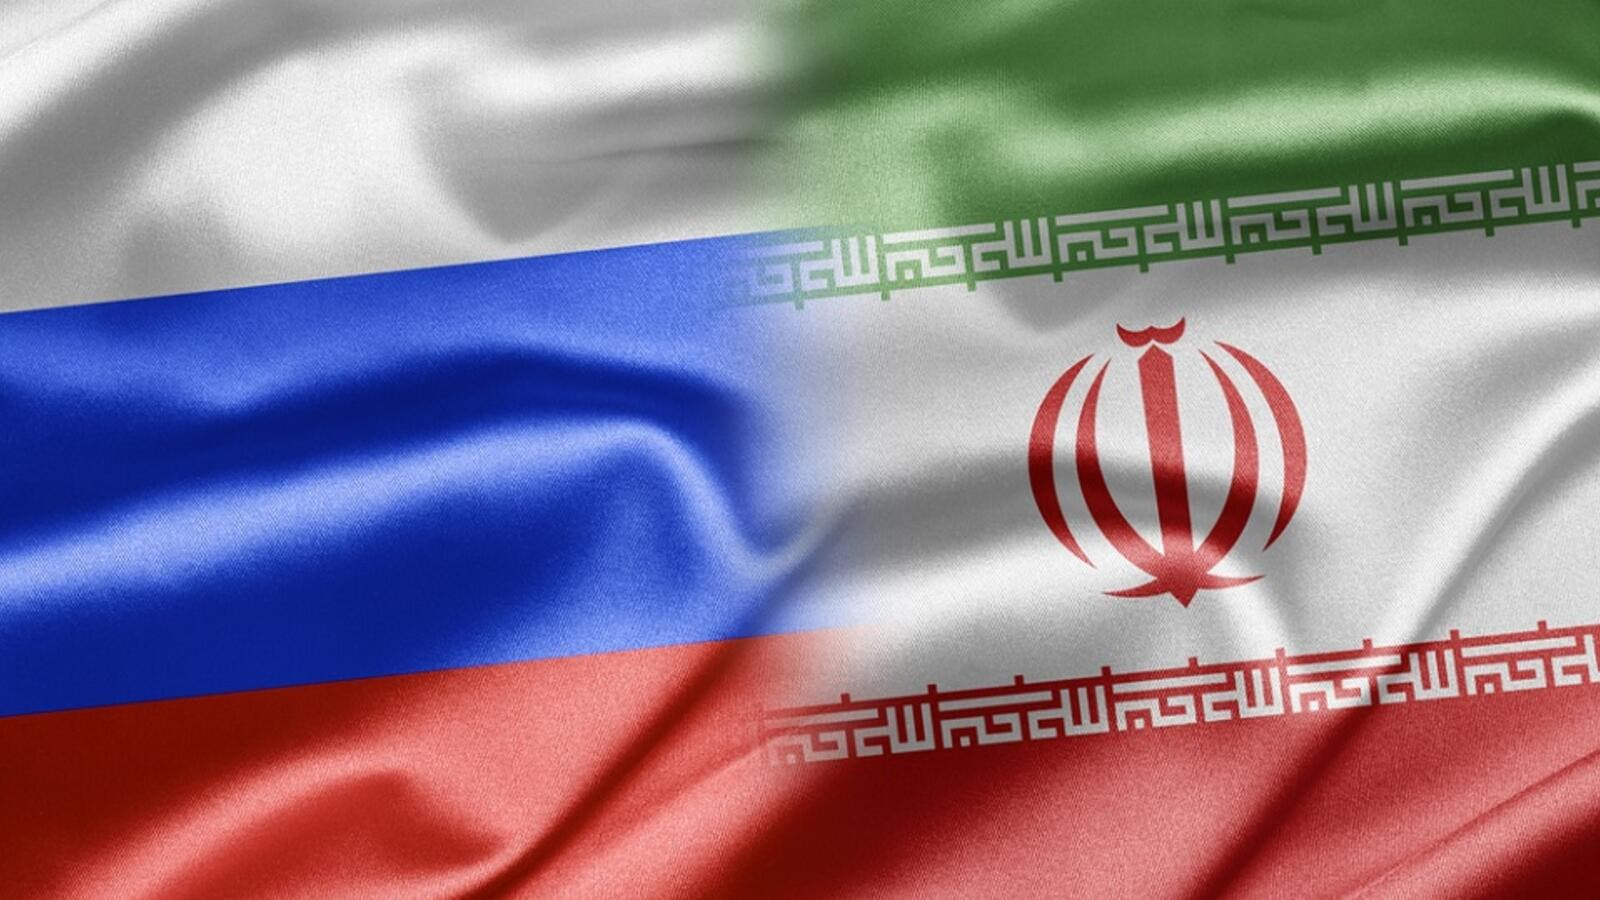 Iran: Russia's $5 Billion Loan to Be Used for Construction of Two Major Projects